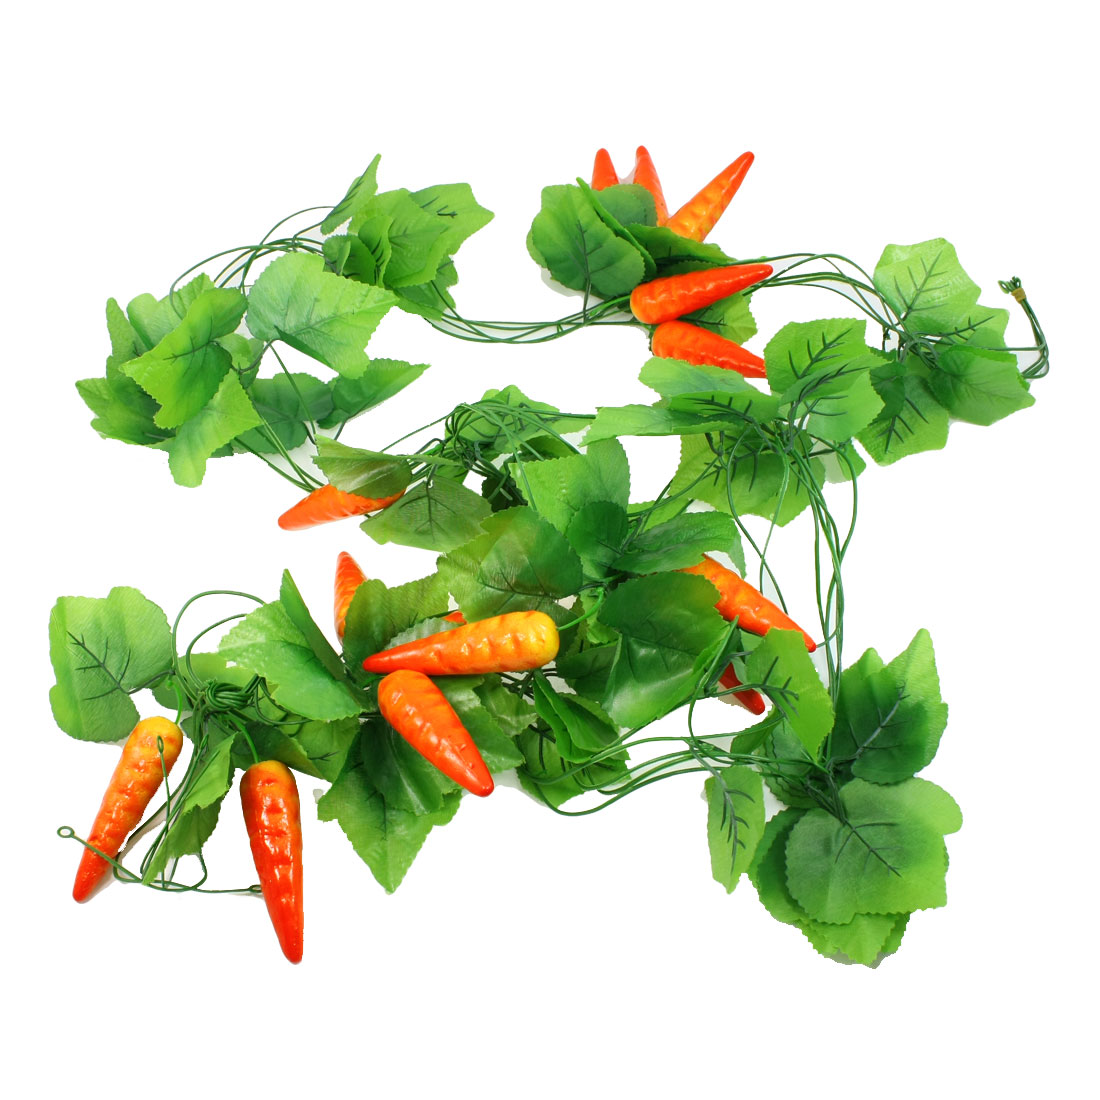 7.2Ft Long Emulational Green Leaf Chili Fruit Hanging Vine Decoration 5 Pcs